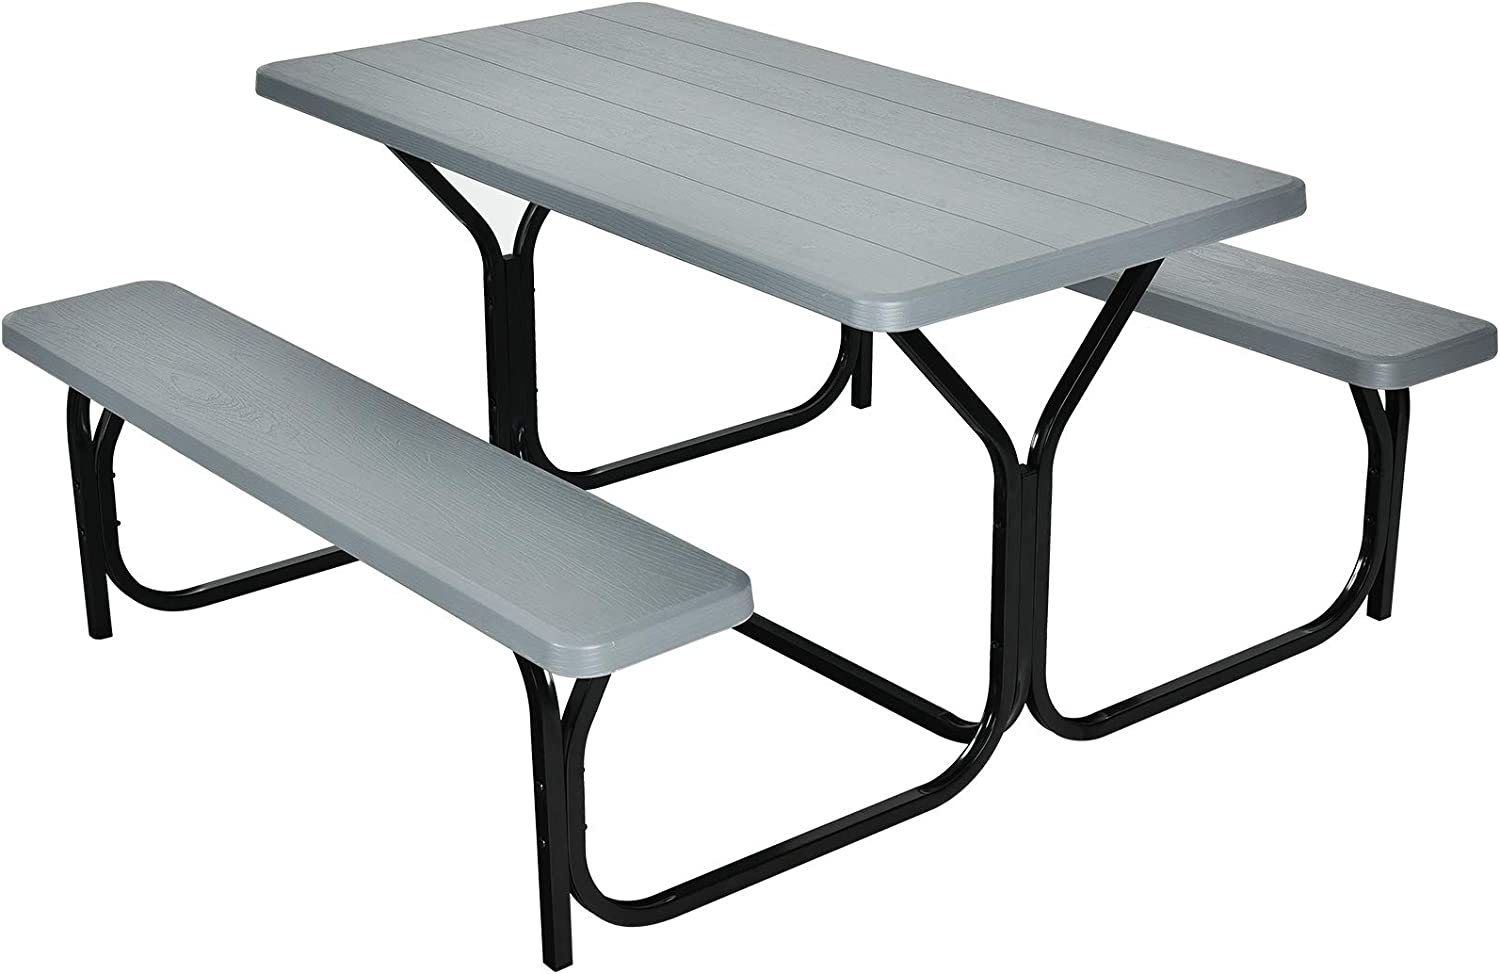 Giantex Picnic Table Bench Set Outdoor Camping All Weather Metal Base Wood-Like Texture Backyard Poolside Dining Party Garden Patio Lawn Deck Furniture Large Camping Picnic Tables for Adult (Gray)